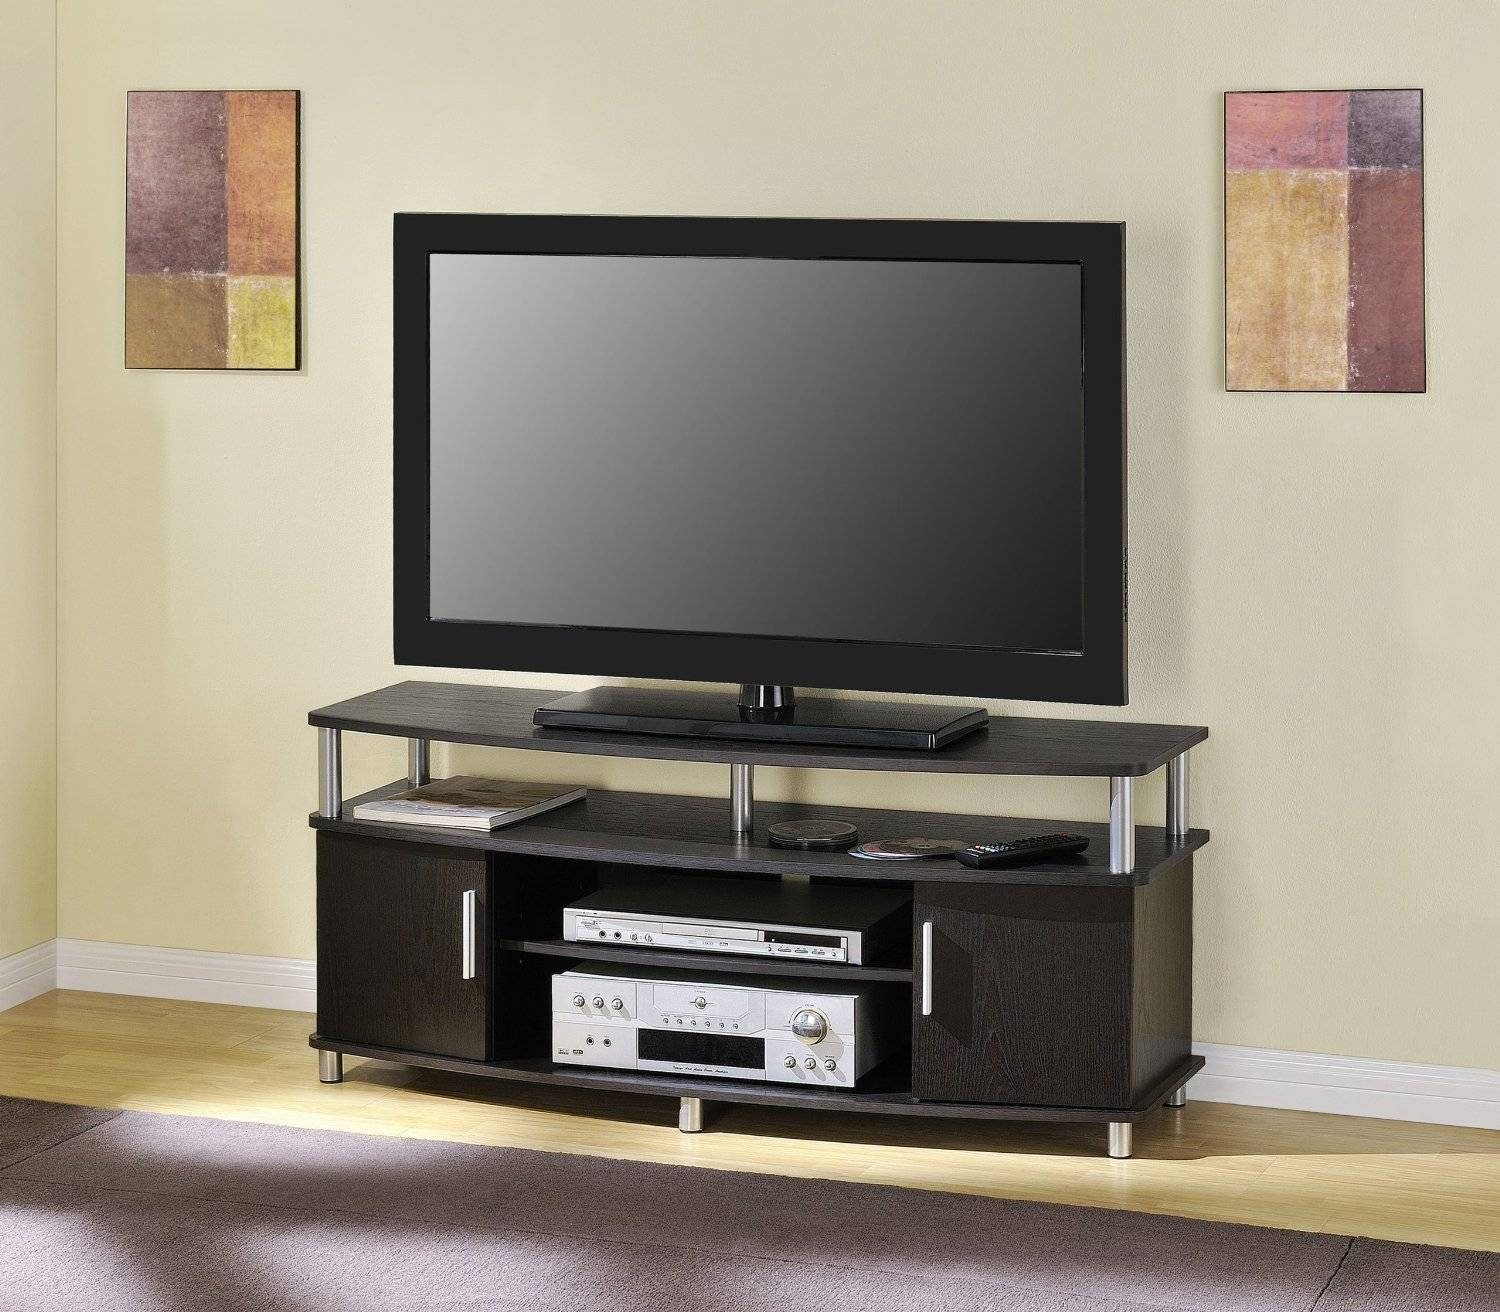 Small Black Oak Wood Tv Stand With Countertop And Cabinet Storage in Oak Tv Stands for Flat Screens (Image 7 of 15)